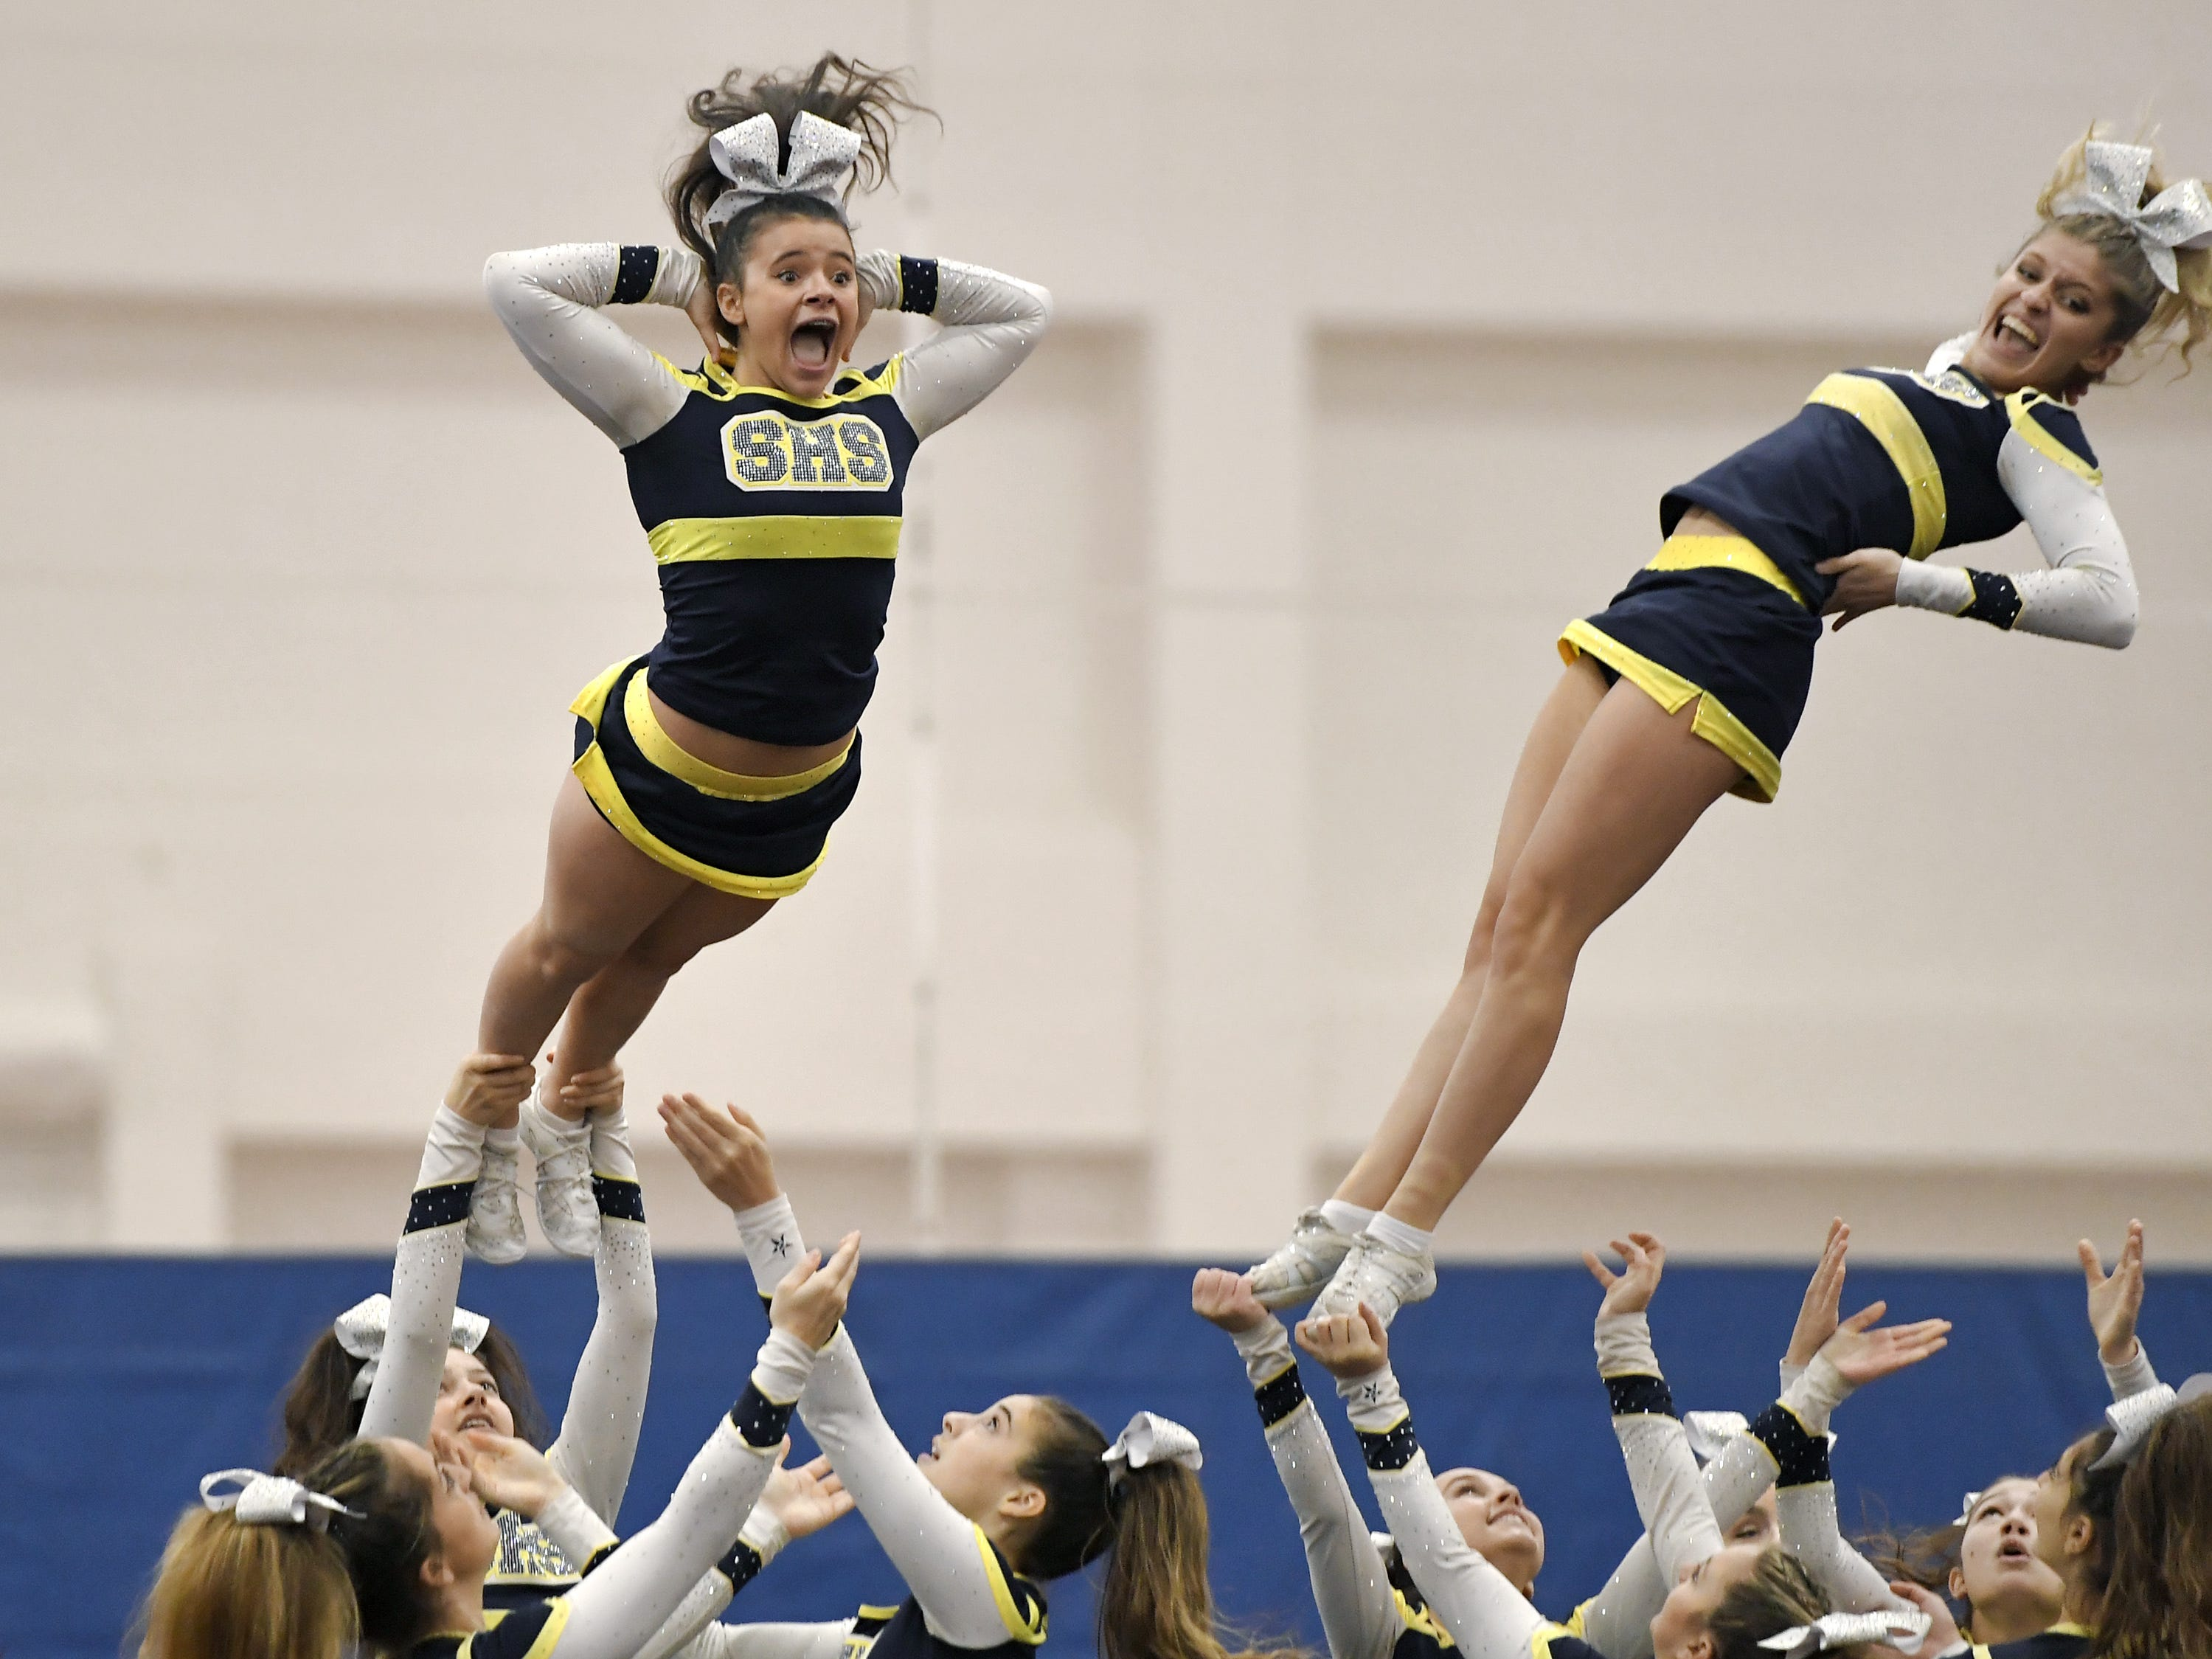 Spencerport cheerleaders perform their routine during the Section V Fall Cheerleading Championships at RIT, Saturday, Oct. 27, 2018.